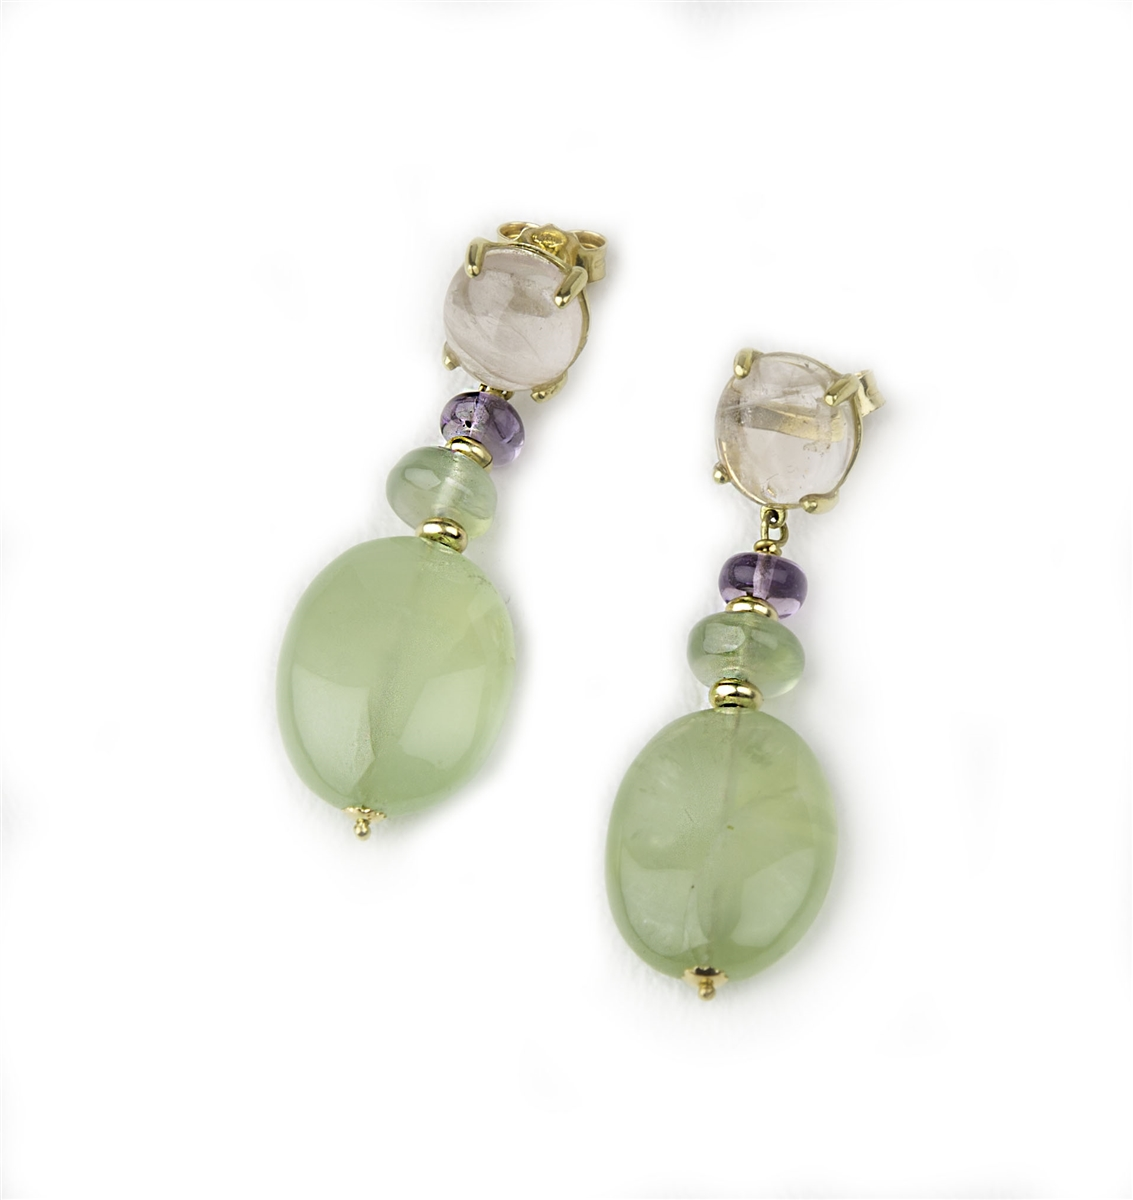 Earrings with cameos and green quartz cabochons